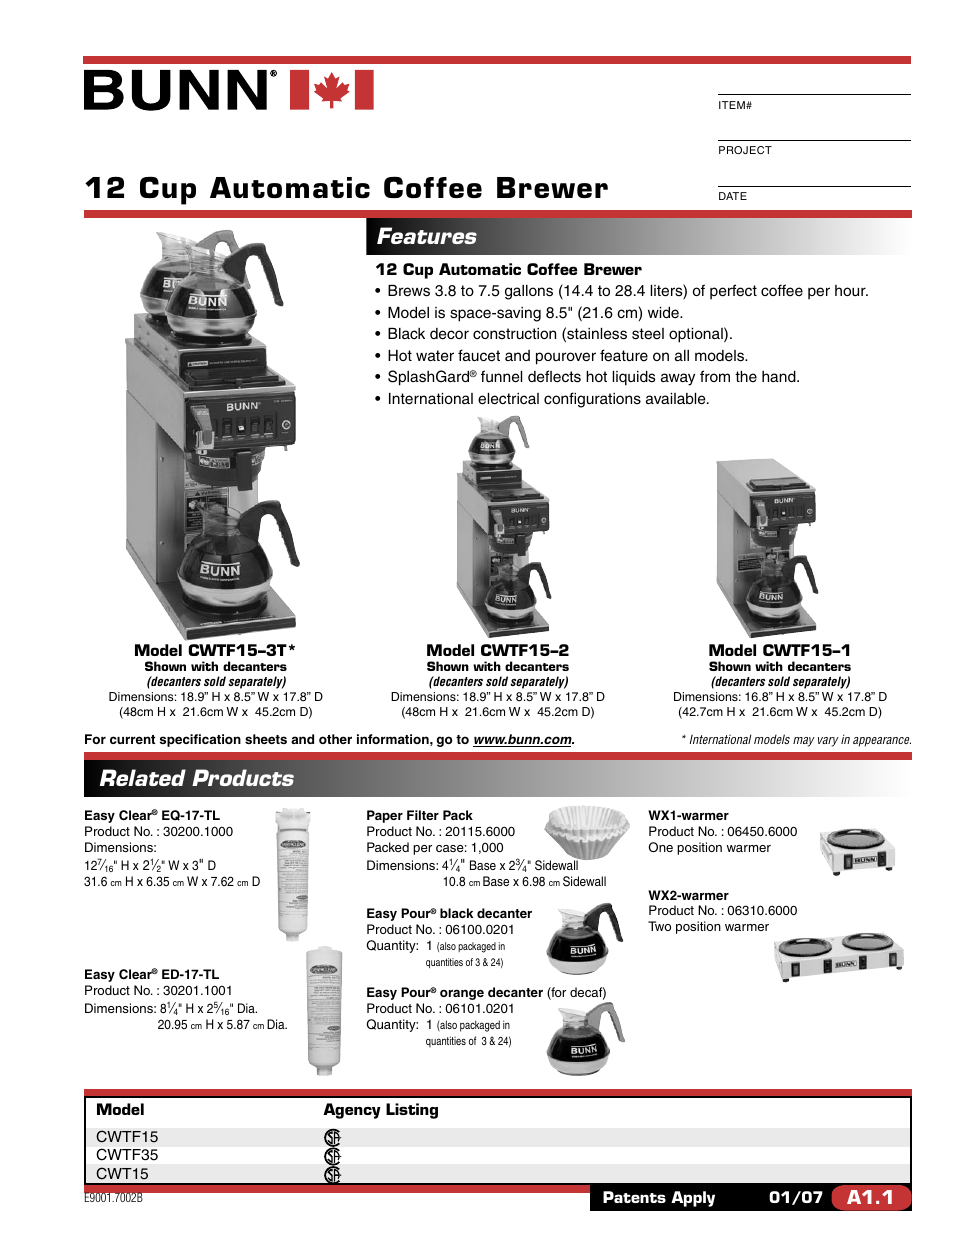 Bunn Coffee Maker User Guide : Bunn CWTF15 User Manual 2 pages Also for: CWTF35, CWT15